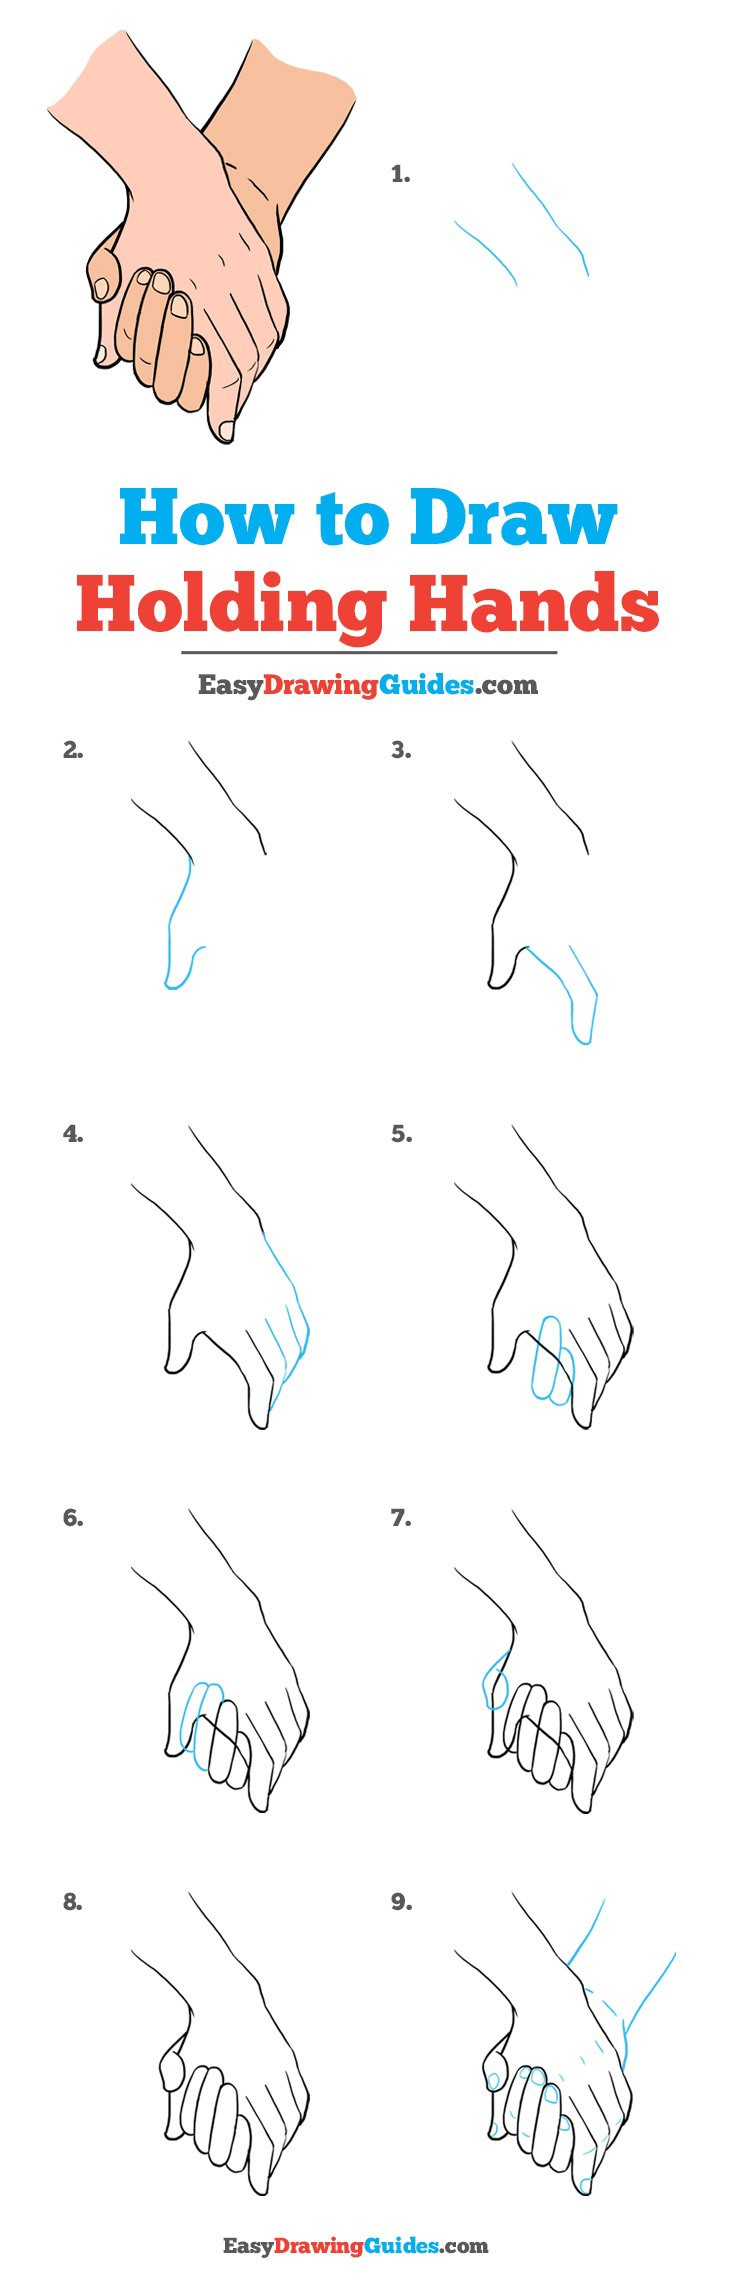 How To Draw Holding Hands By Easy Drawing Guides Medium